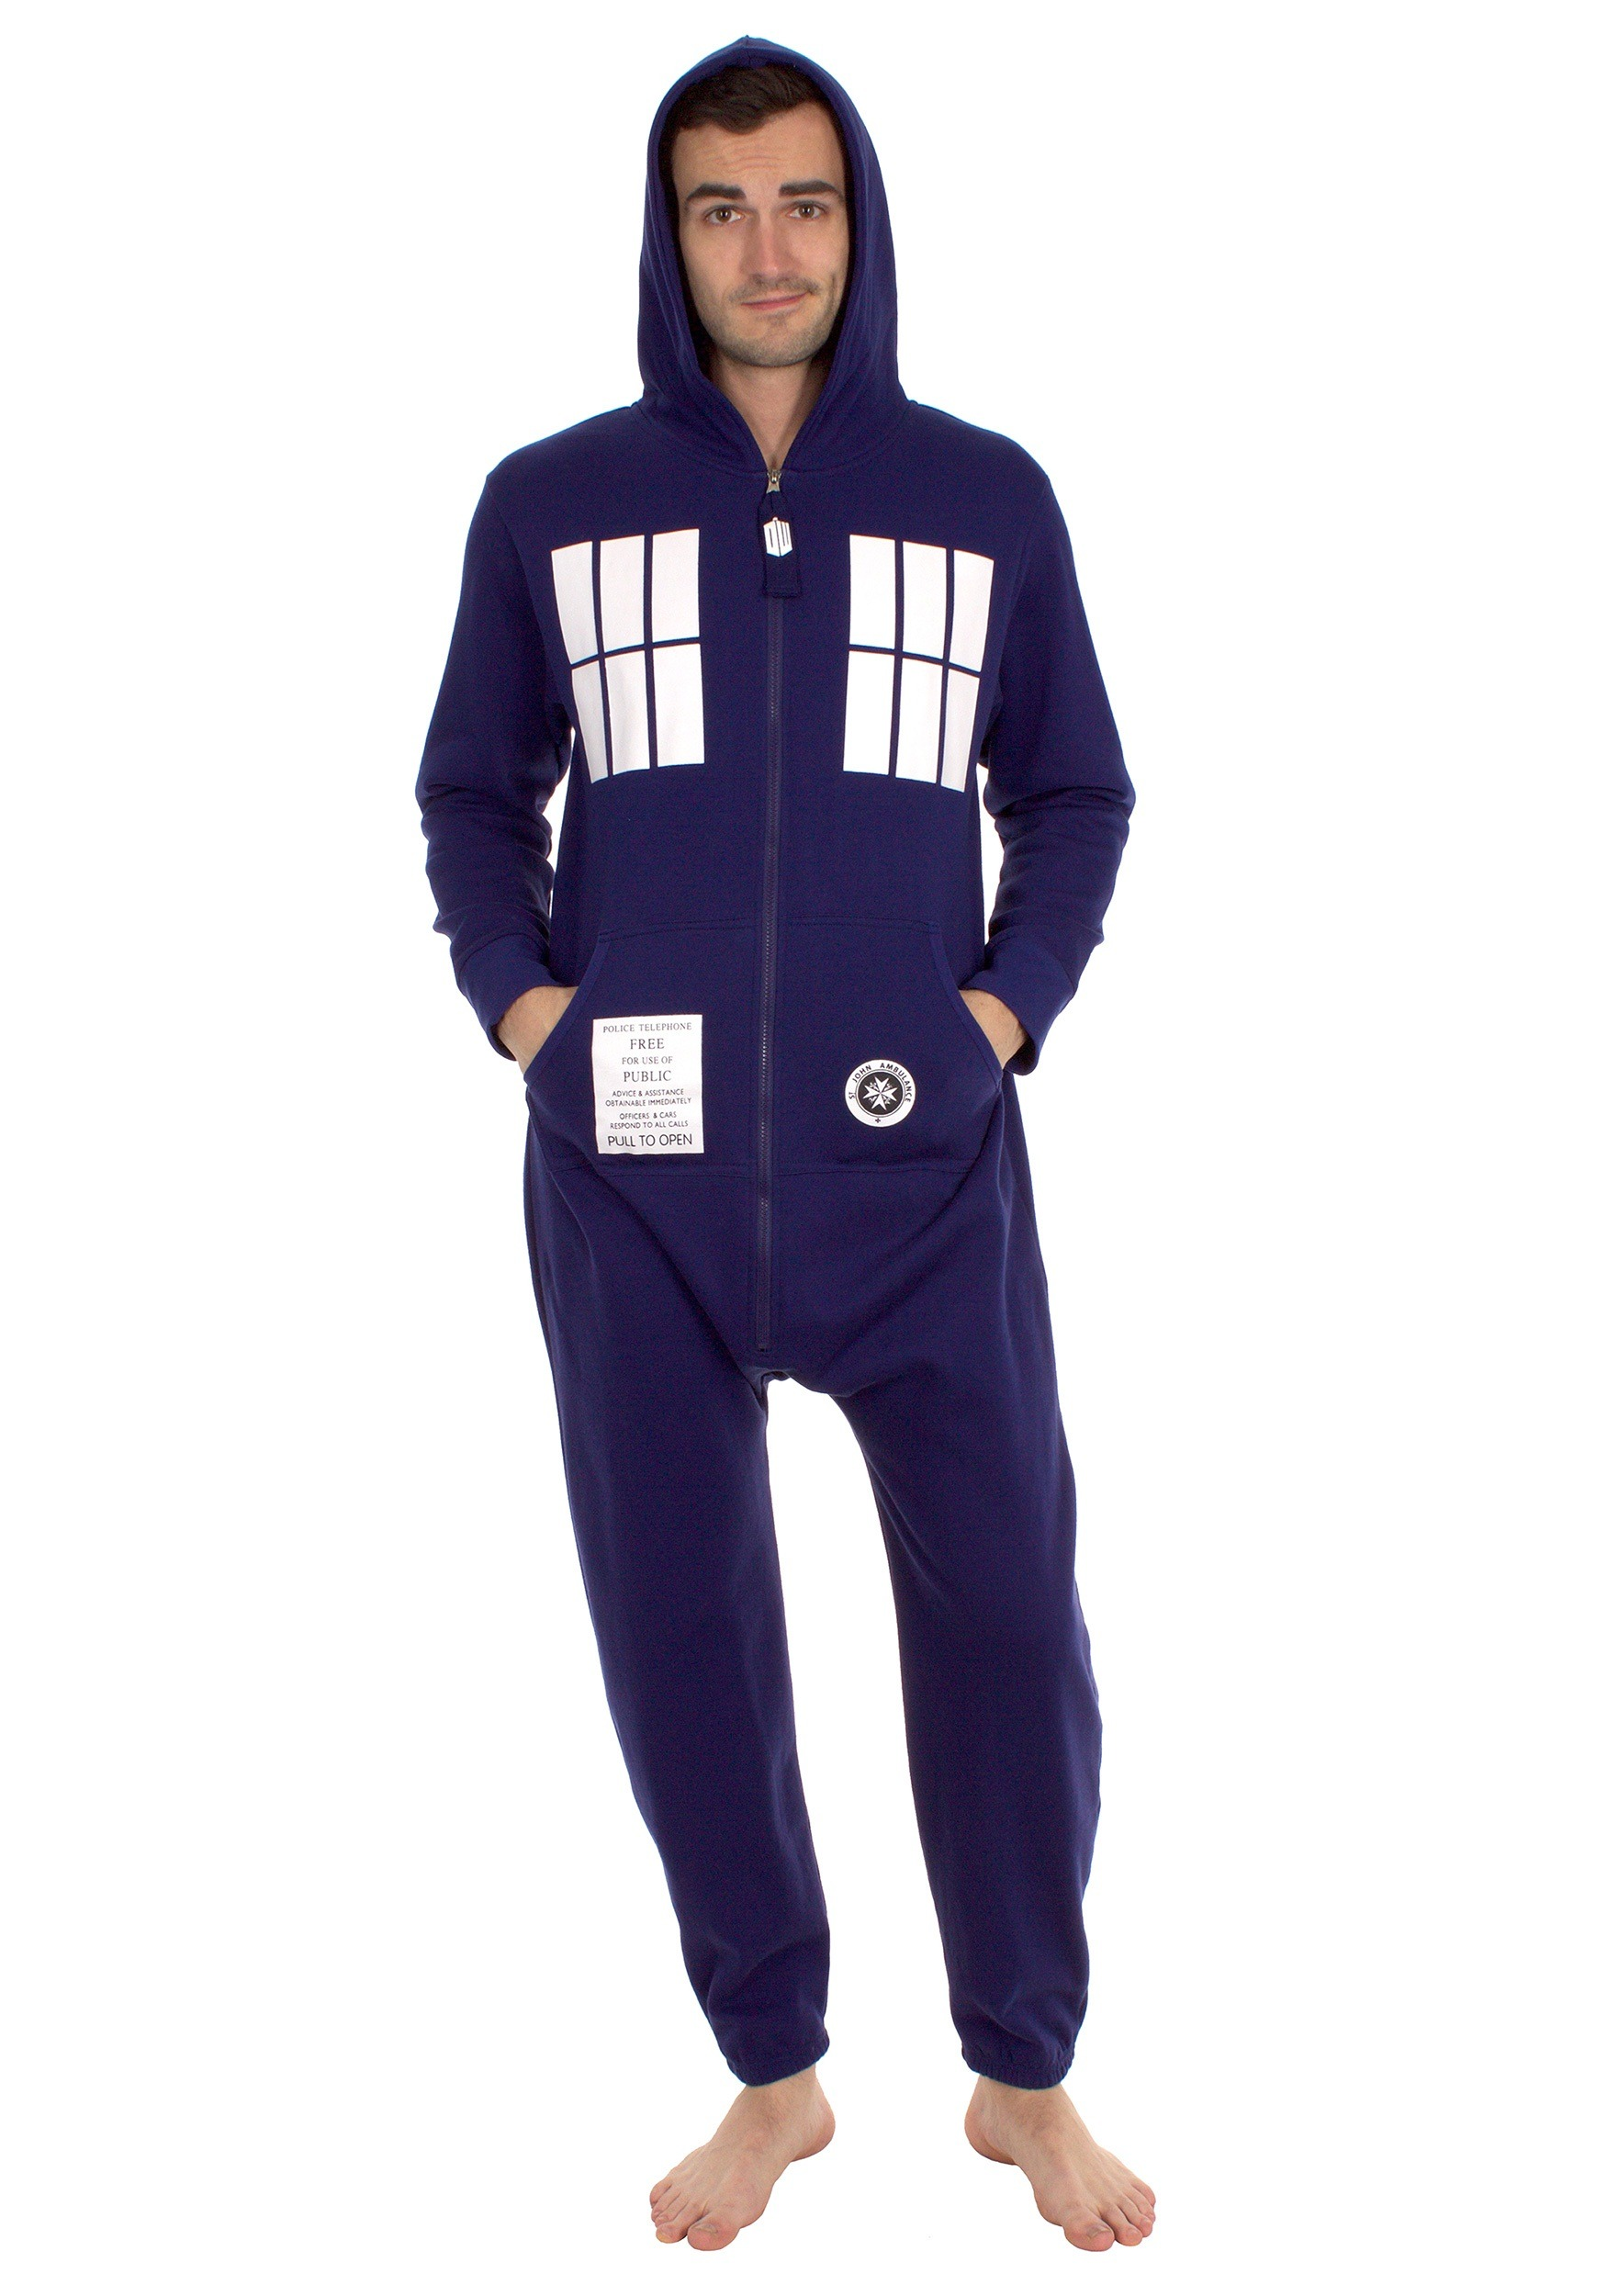 Awesome Men's Dr Who Lounge Pants. Mens cotton sleepwear with all-over Dalek and Tardis print. These comfortable lounge pants feature an elasticated waist and come in a presentation pack.